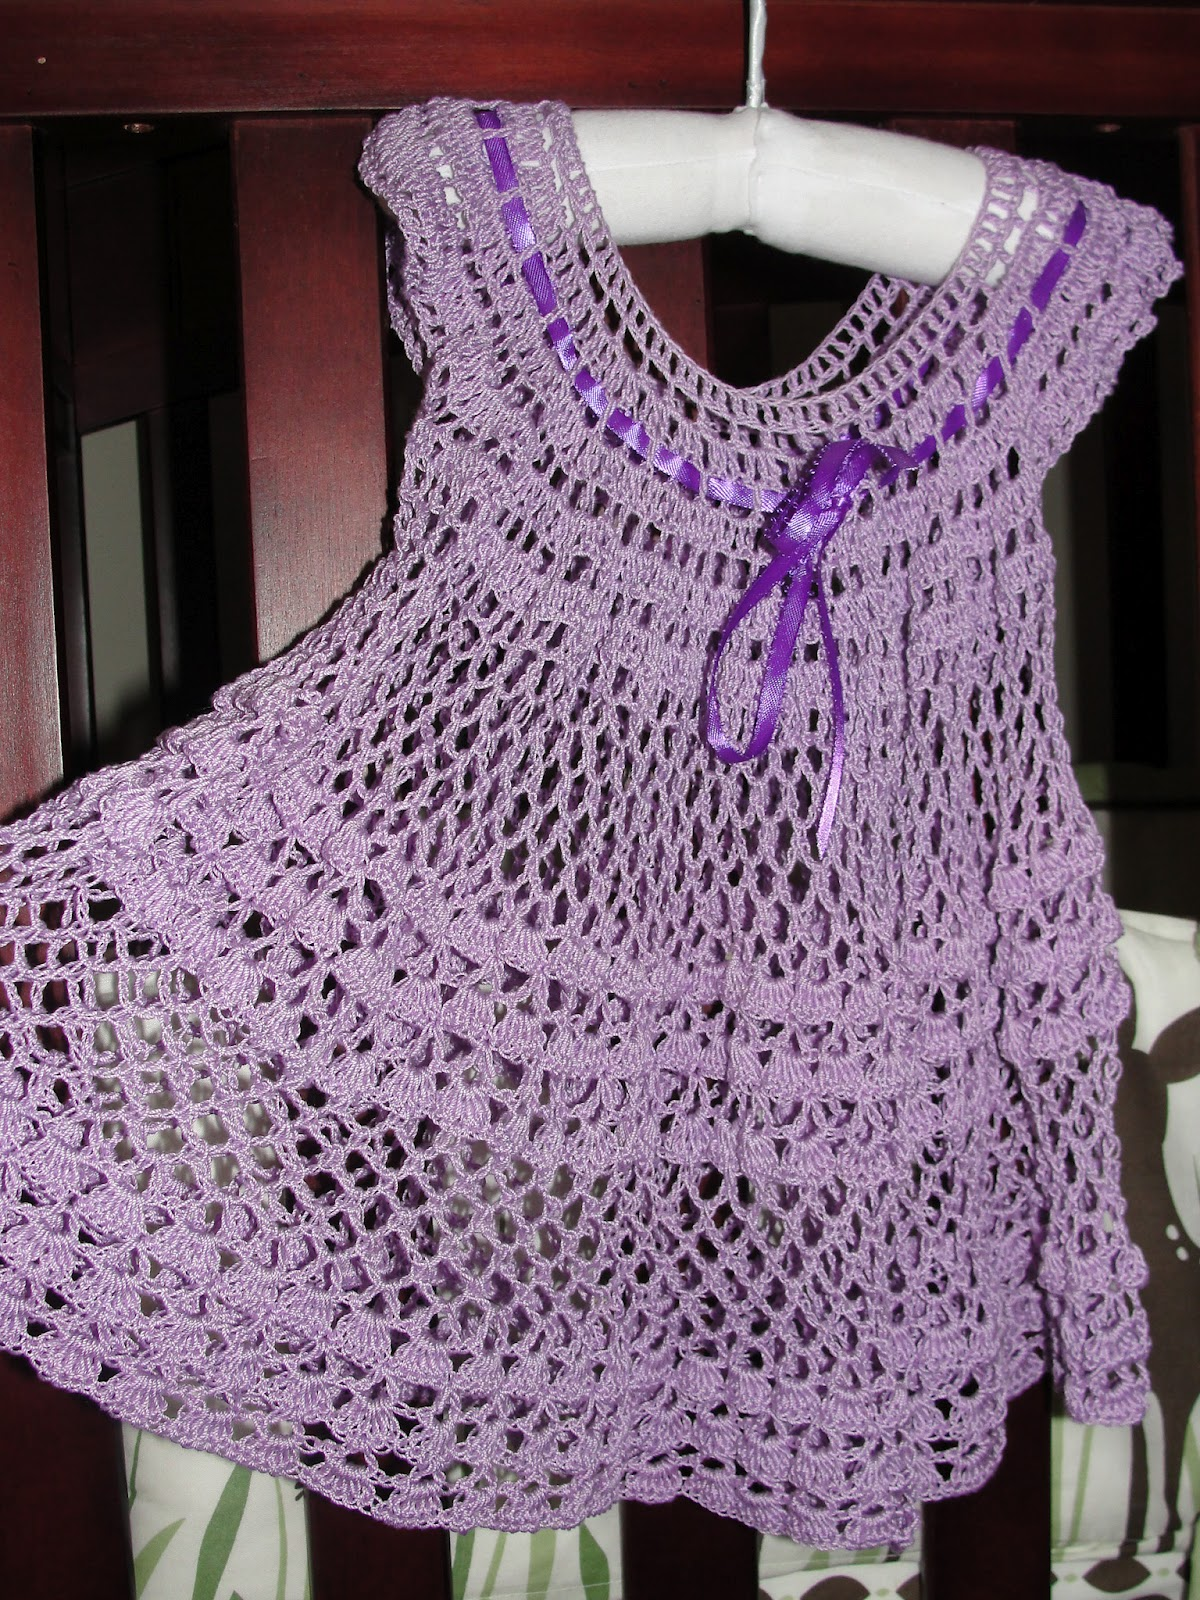 In Karapoozville: Crochet summer baby dress